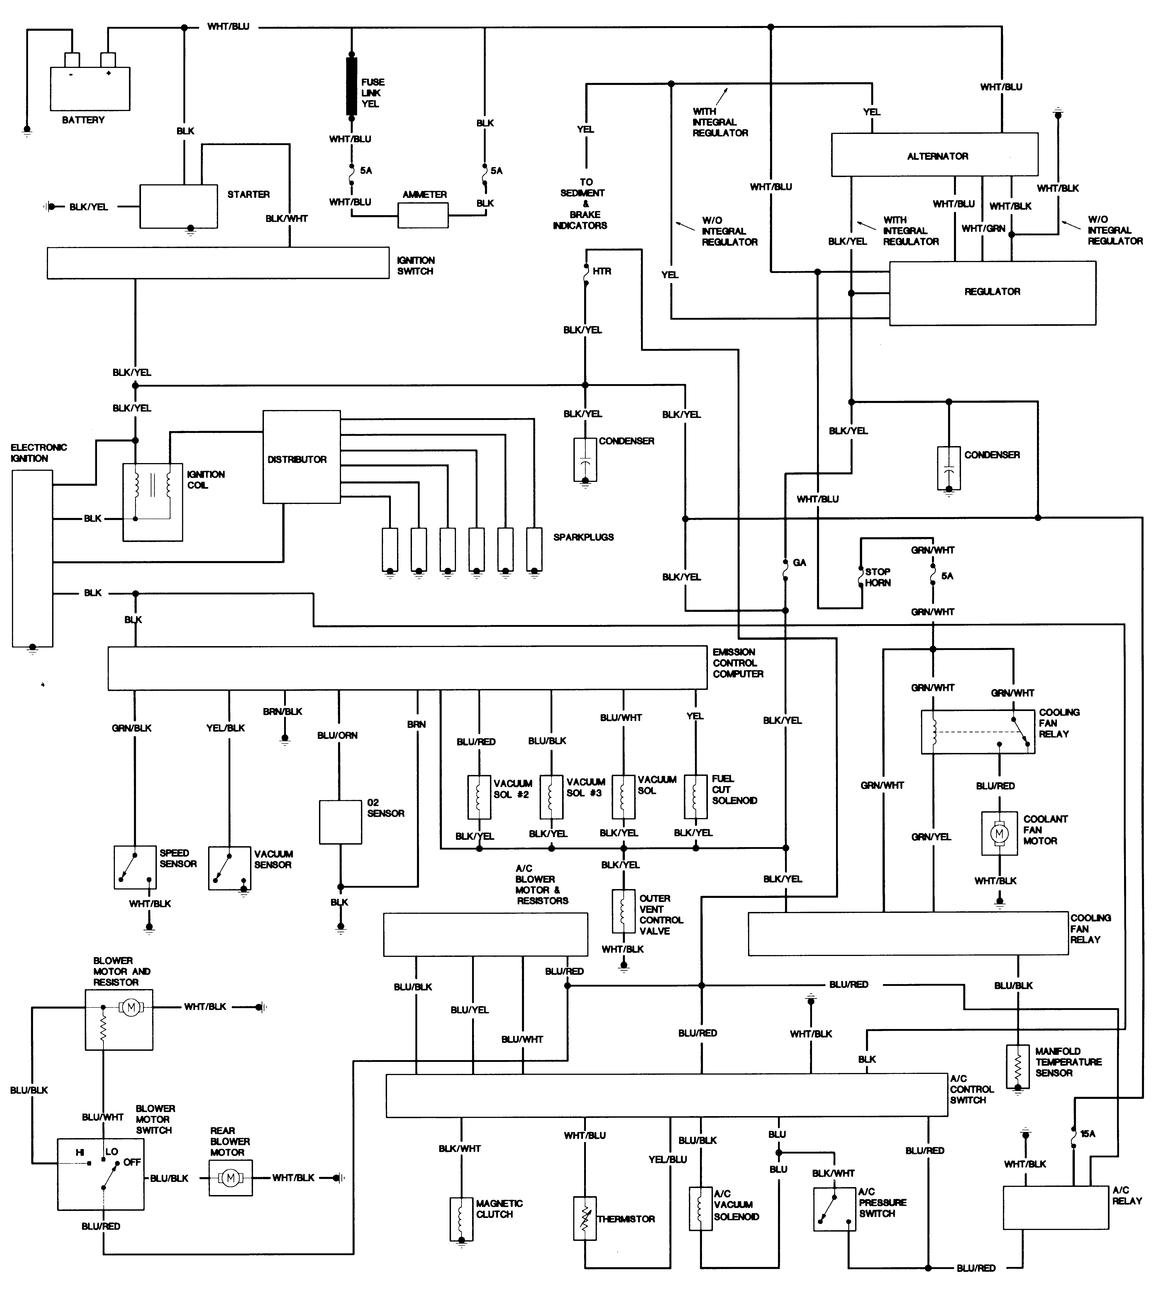 2003 Toyota Matrix Radio Wiring Diagram from ww2-secure.justanswer.com